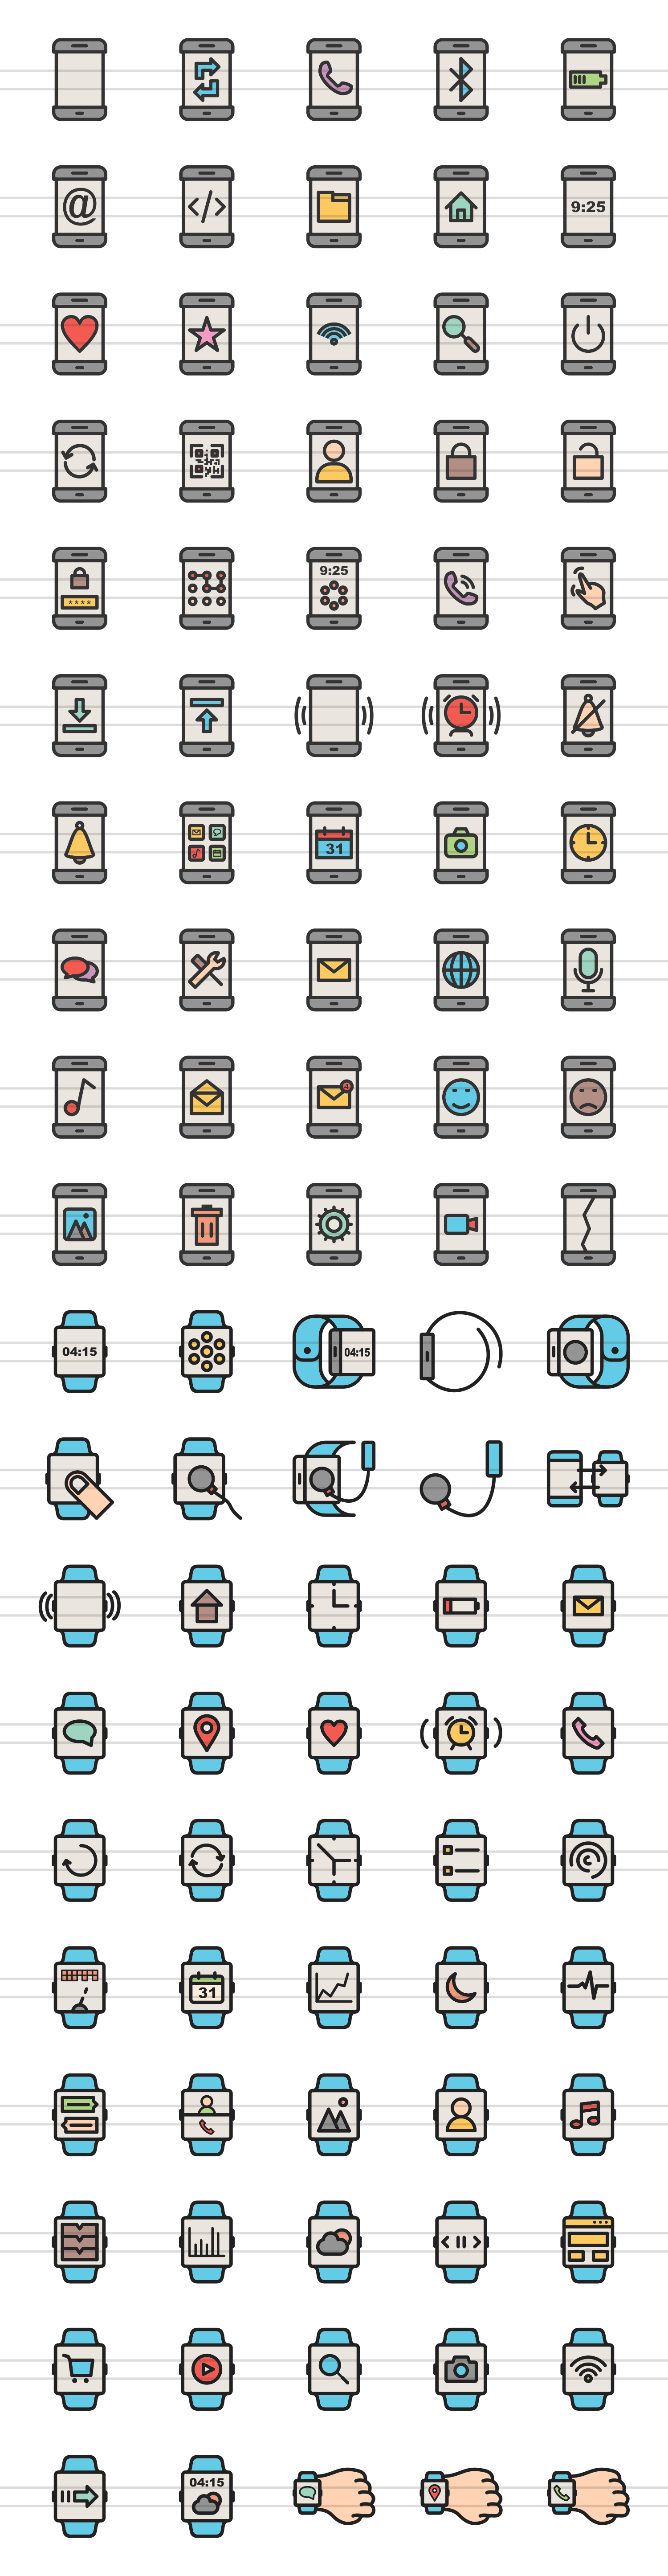 100 Smartphone & Smartwatch Filled Line Icons example image 2